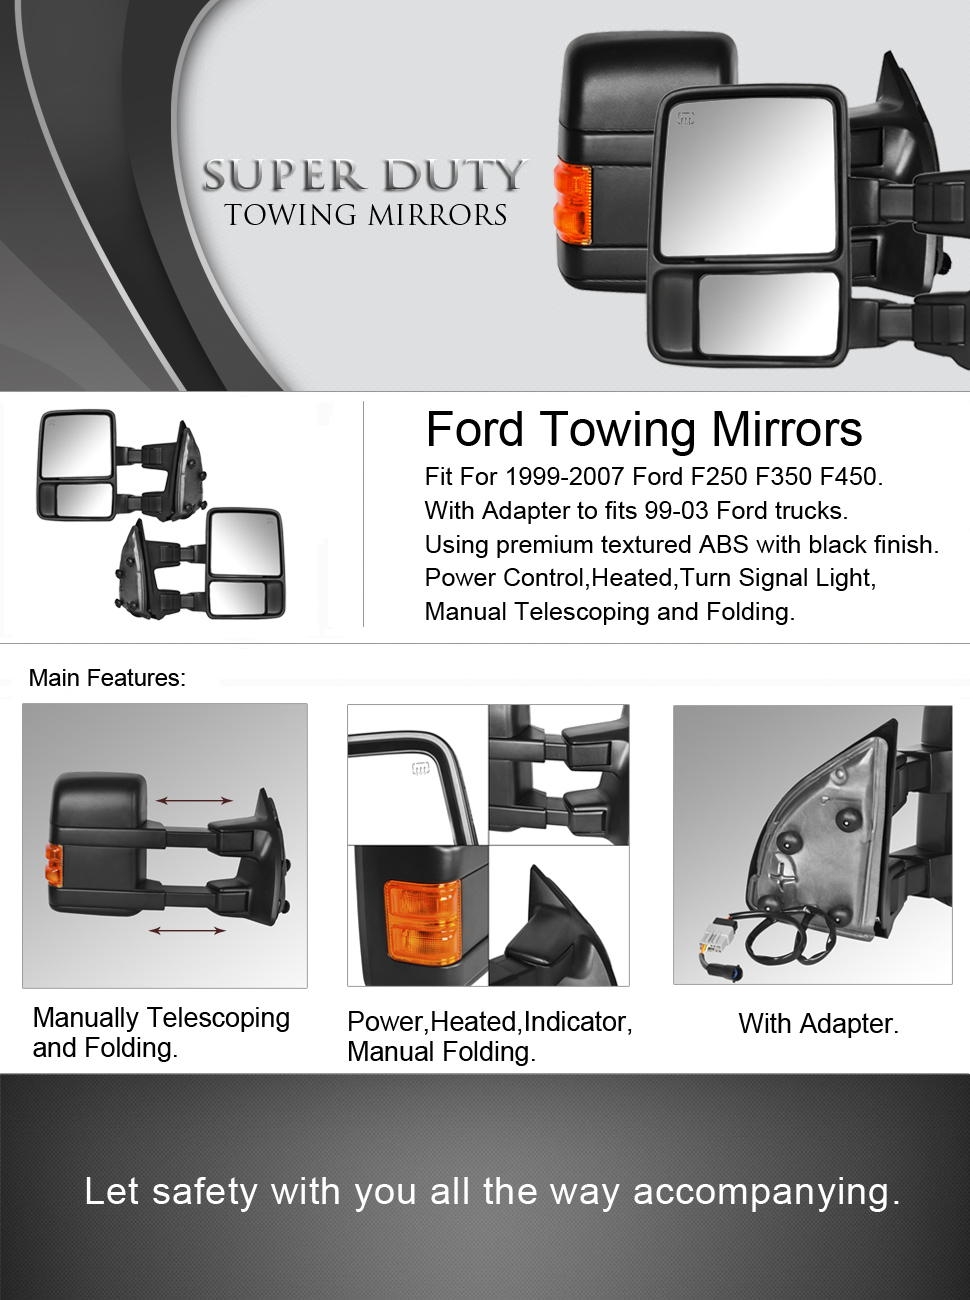 com dedc ford towing mirrors f ford tow mirrors f dedc ford towing mirrors f250 ford tow mirrors f350 f450 pair for 1999 2007 side mirror power heated signal light upgrade to 08 superduty retrofit